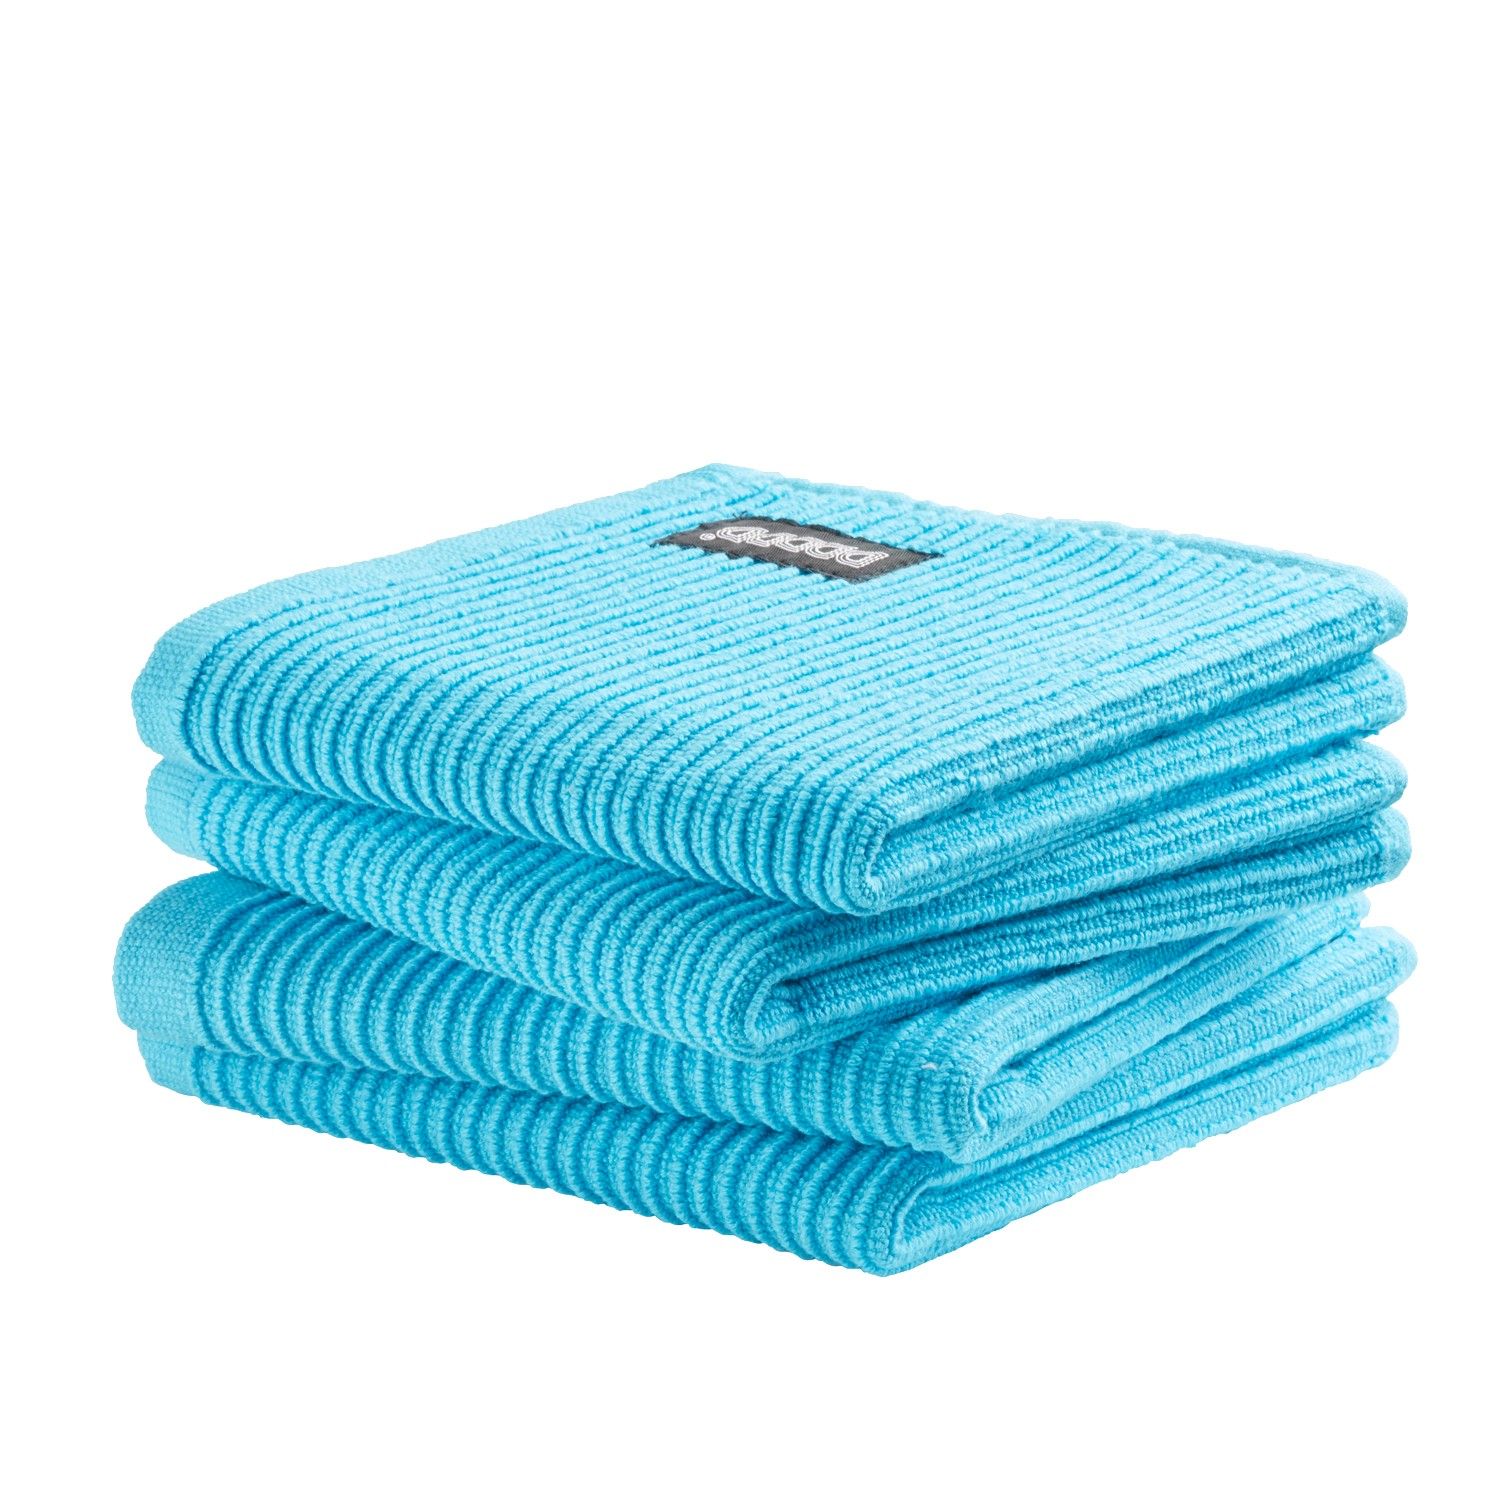 Vaatdoek Basic Clean | Bright blue | 30 x 30 cm